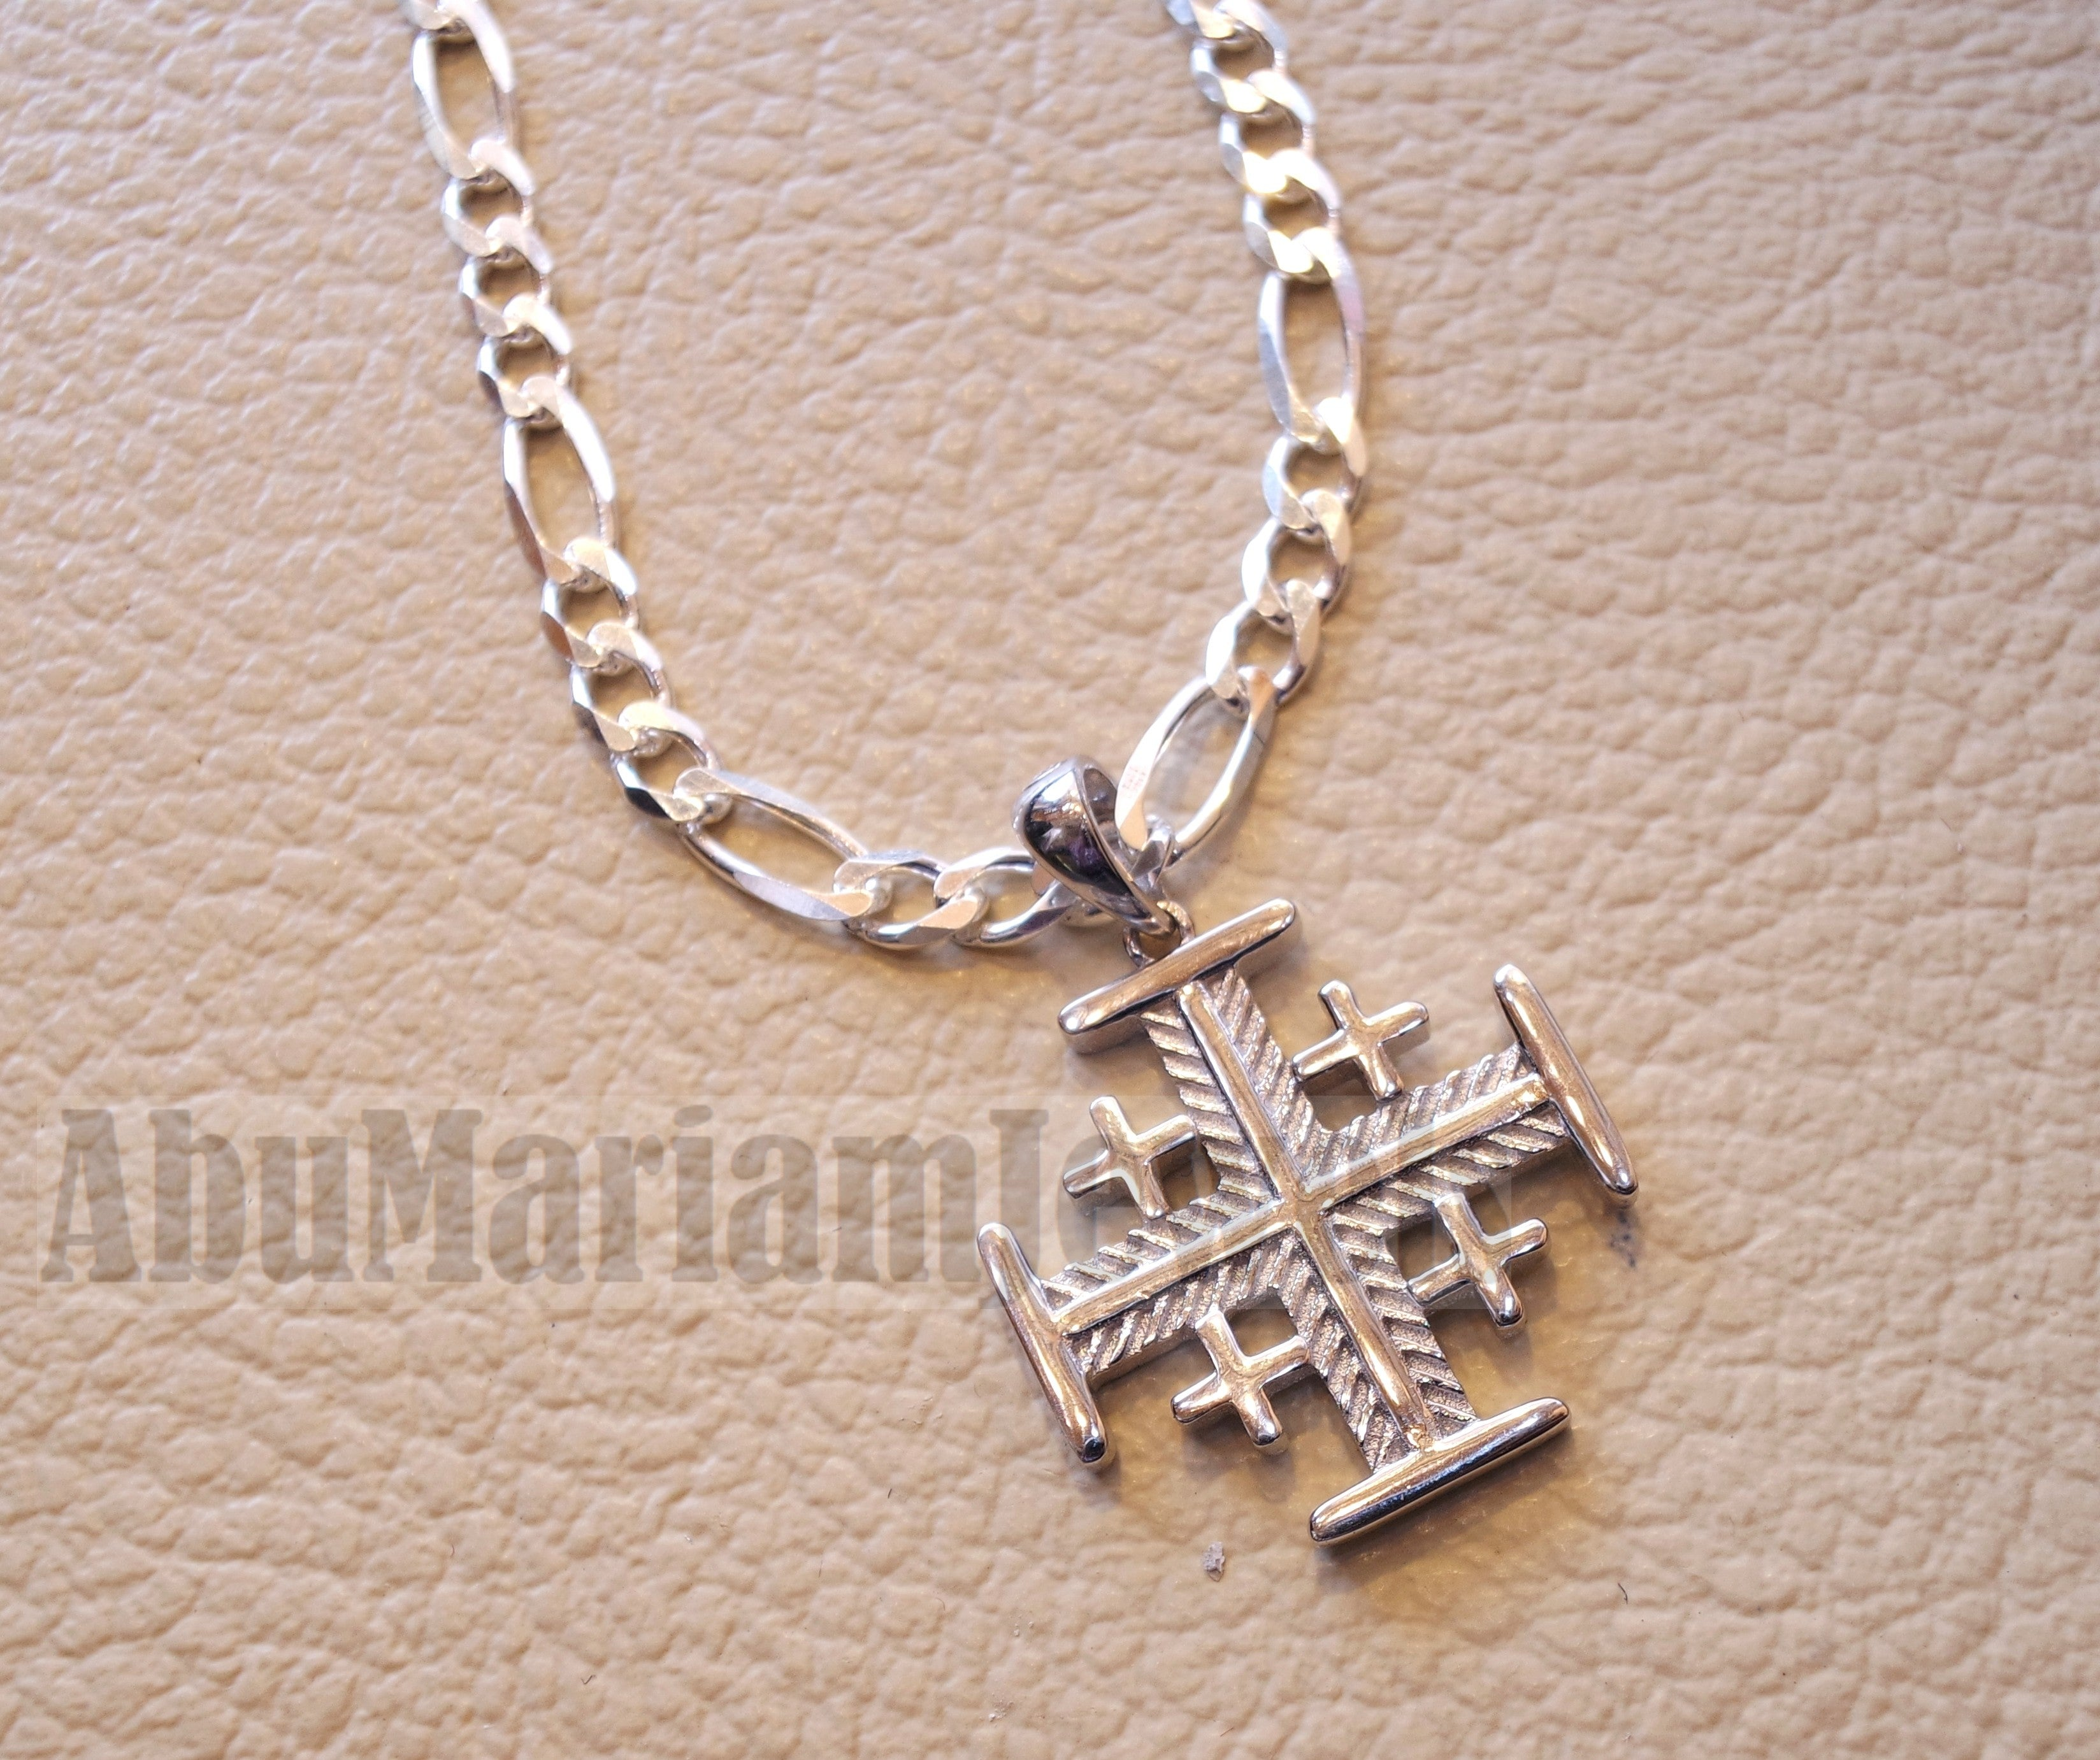 Jerusalem small cross pendant with heavy chain sterling silver 925 middle eastern jewelry christianity vintage handmade heavy fast shipping